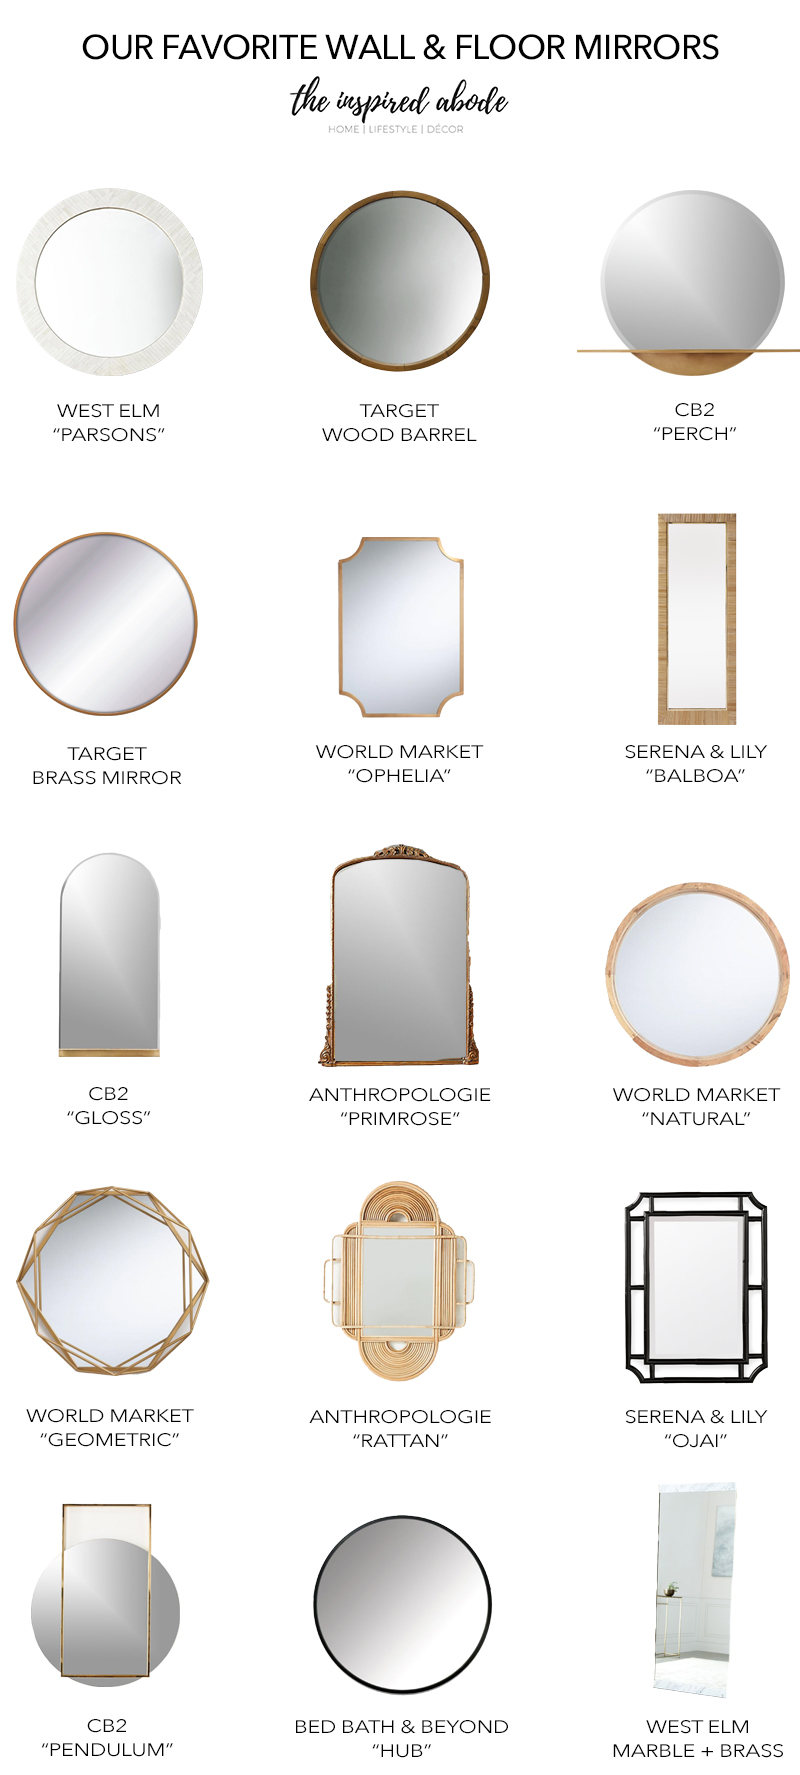 Our favorite wall mirrors and floor mirrors